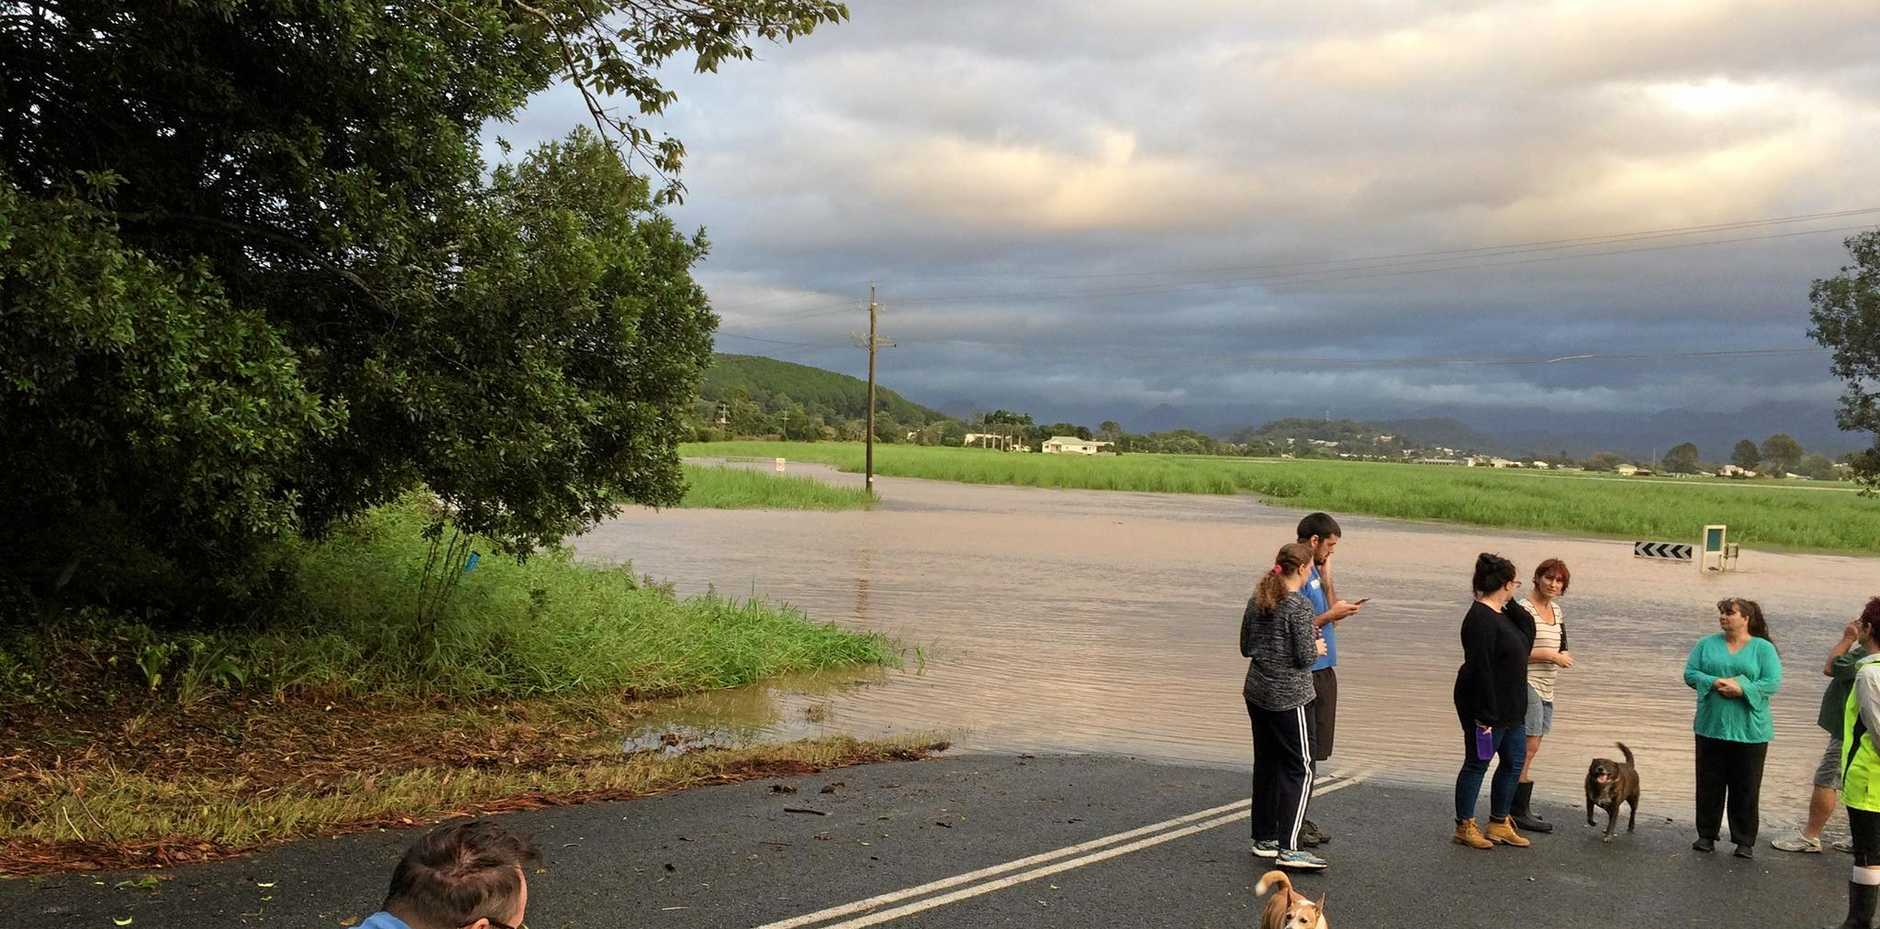 Vanessa Scott-White captured this image of Kielvale, near South Murwillumbah, as flooding continues in the area.